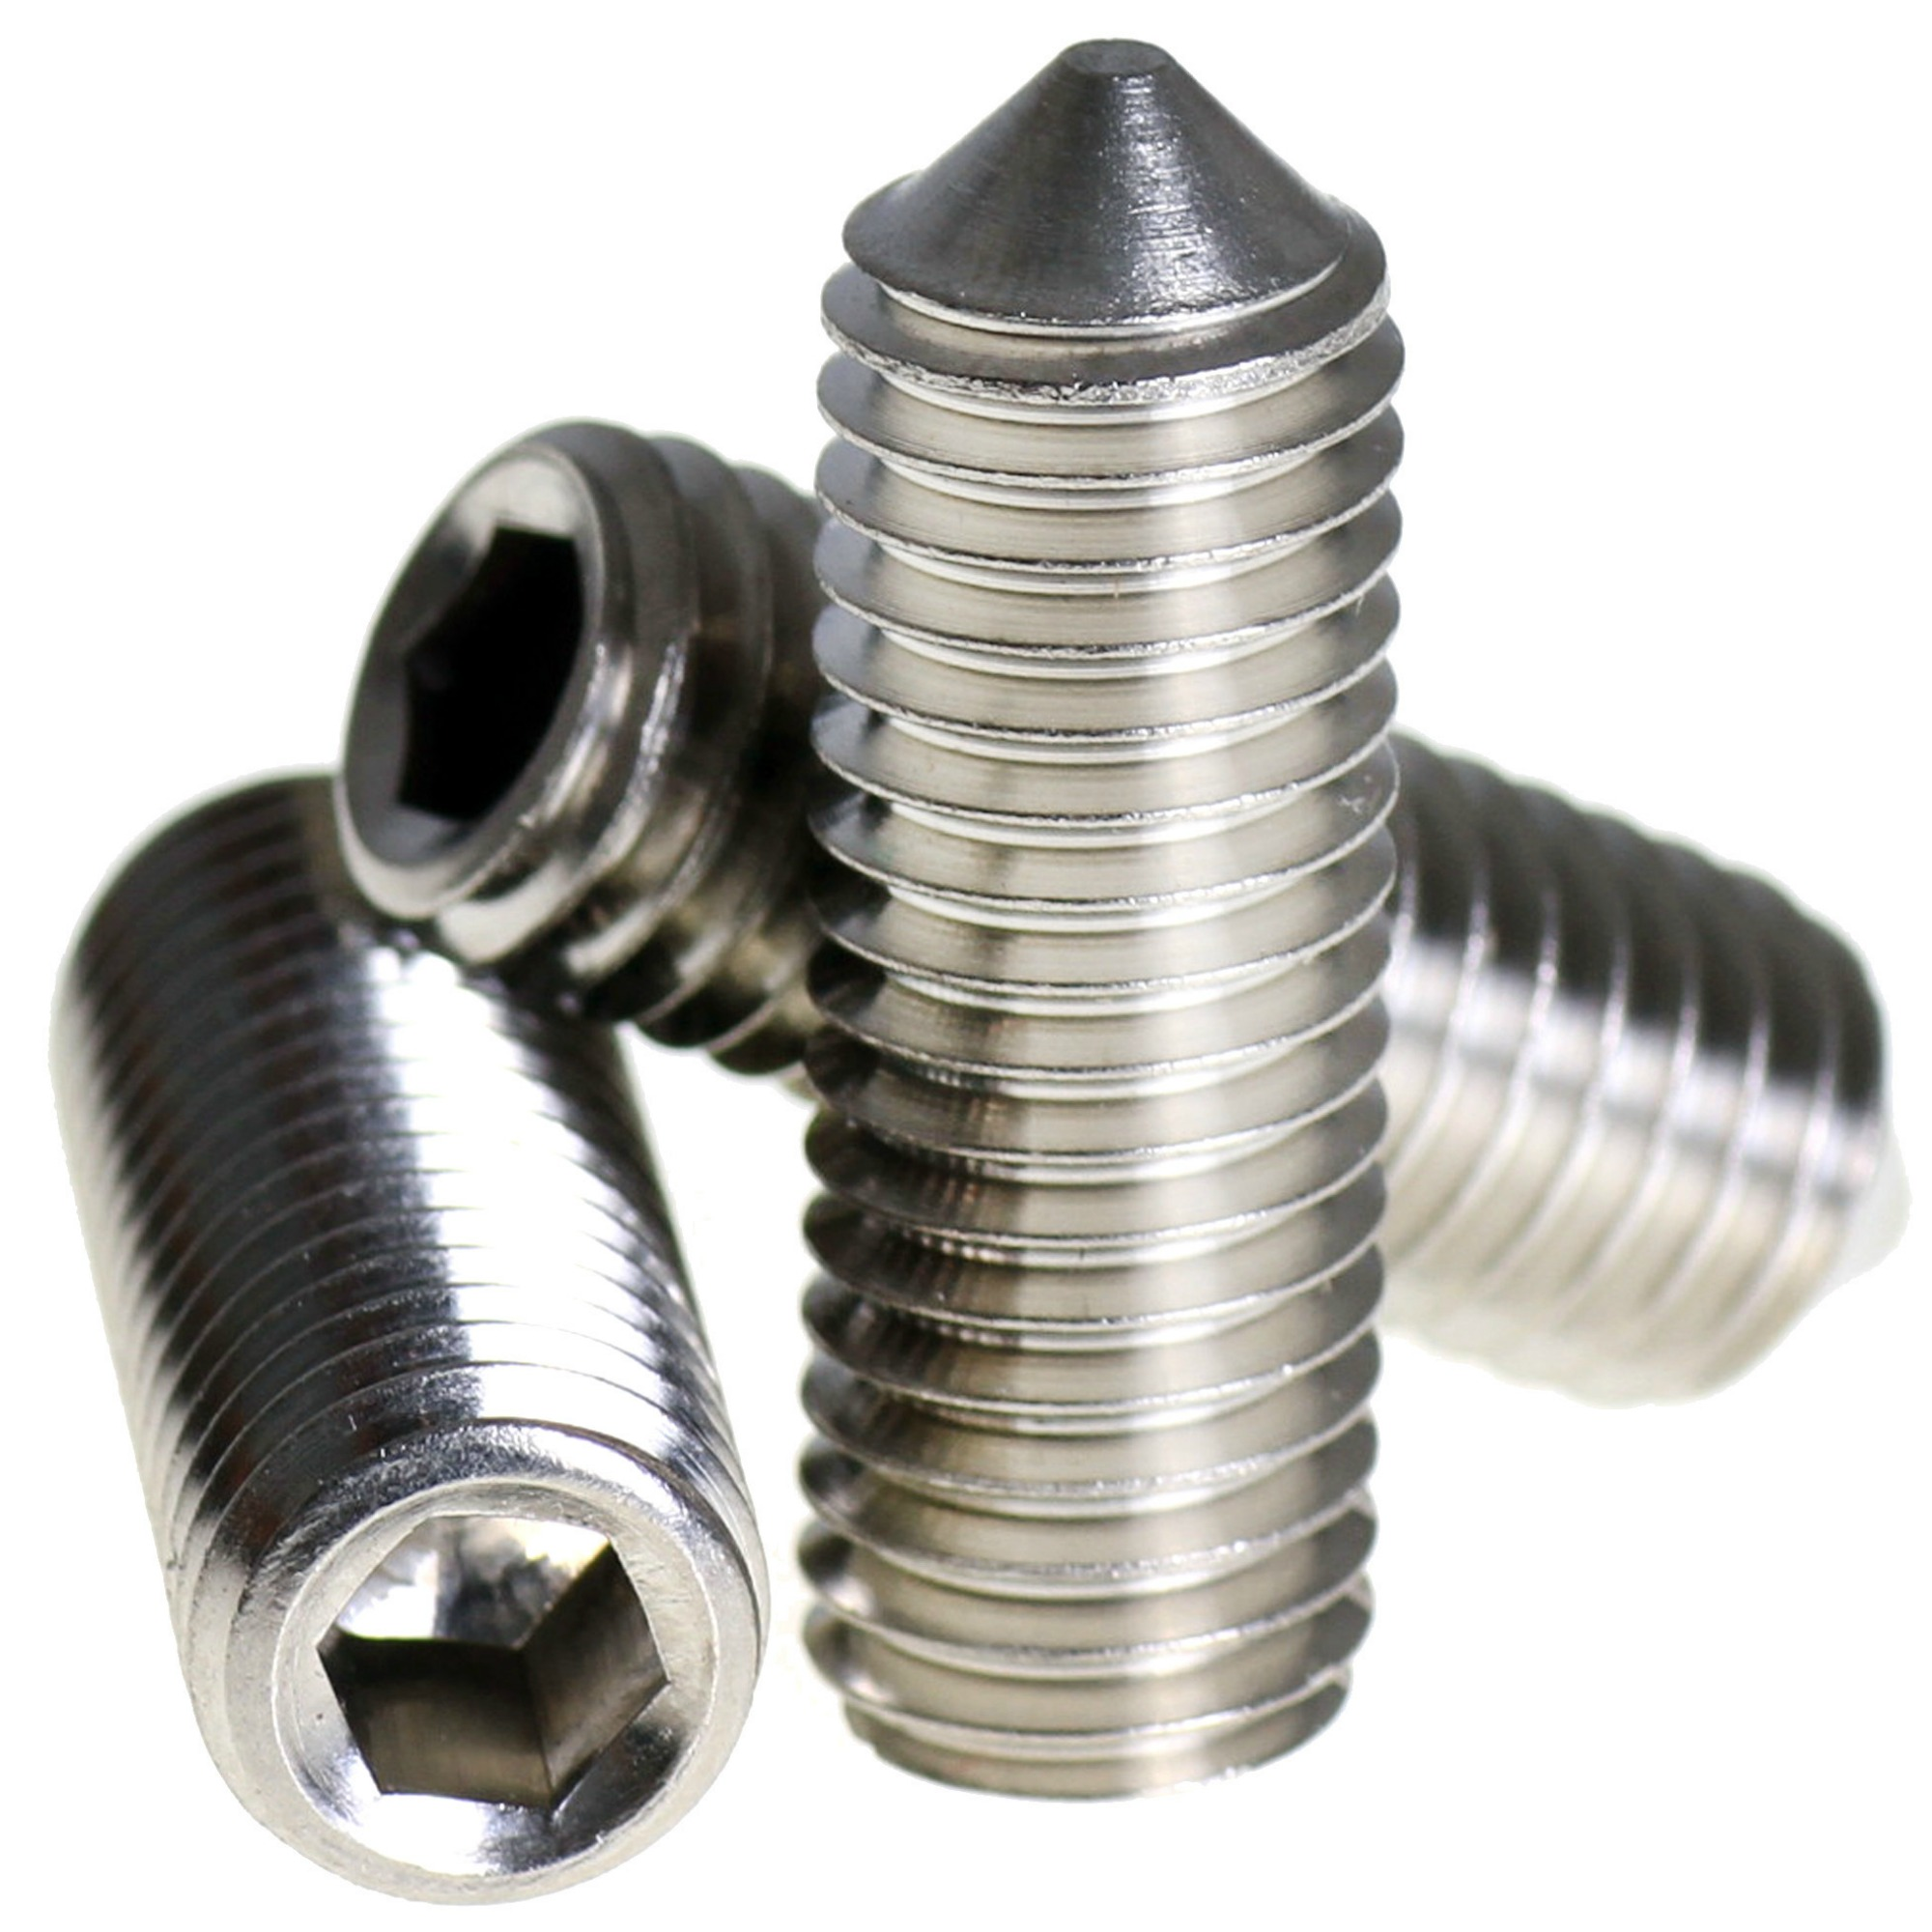 2mm x 5mm - Stainless Steel Pack of 20 Hex Bolt M2 Fully Threaded Setscrew A2